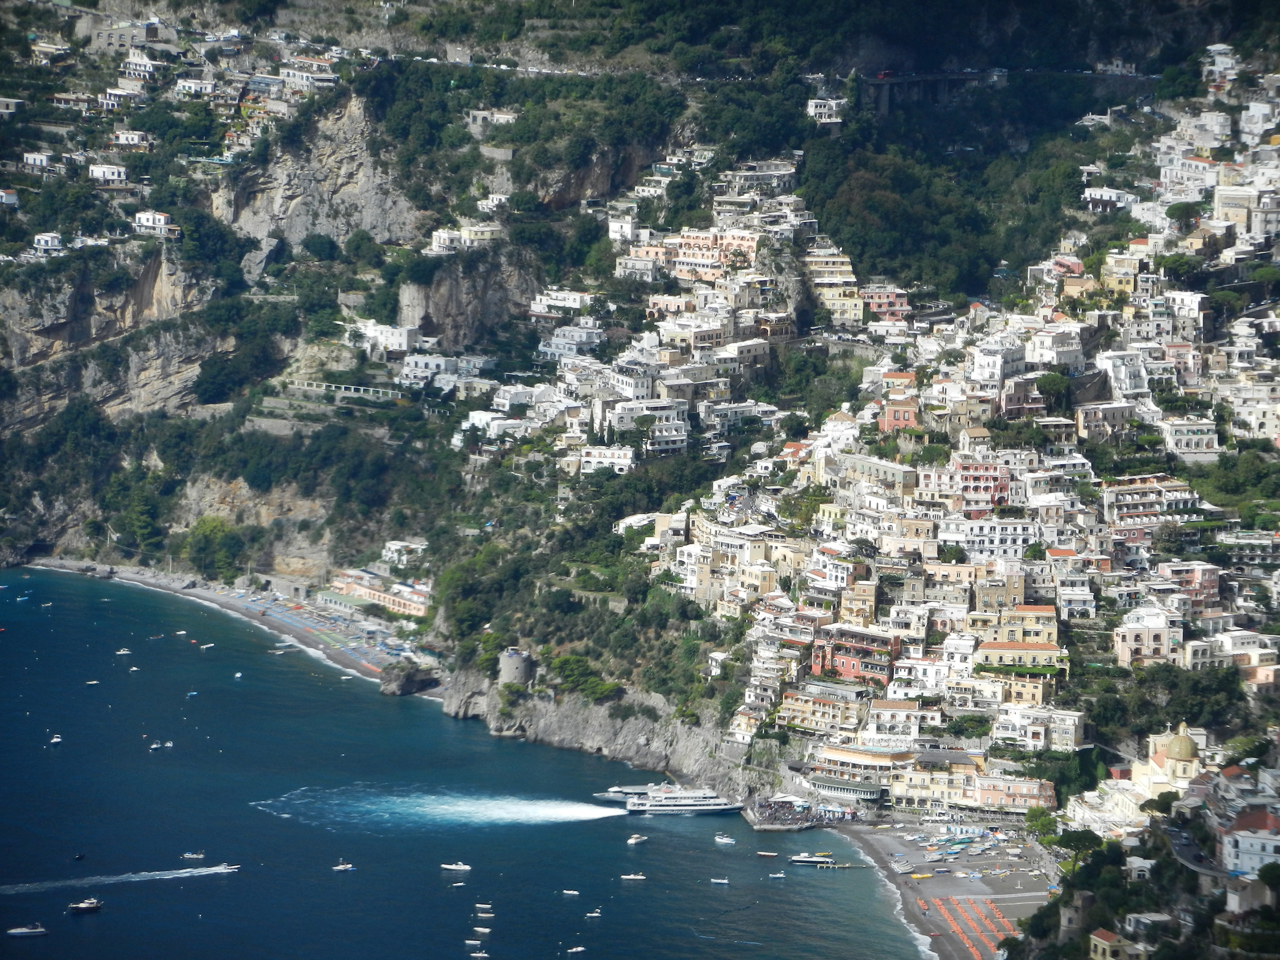 Daydreaming about Positano